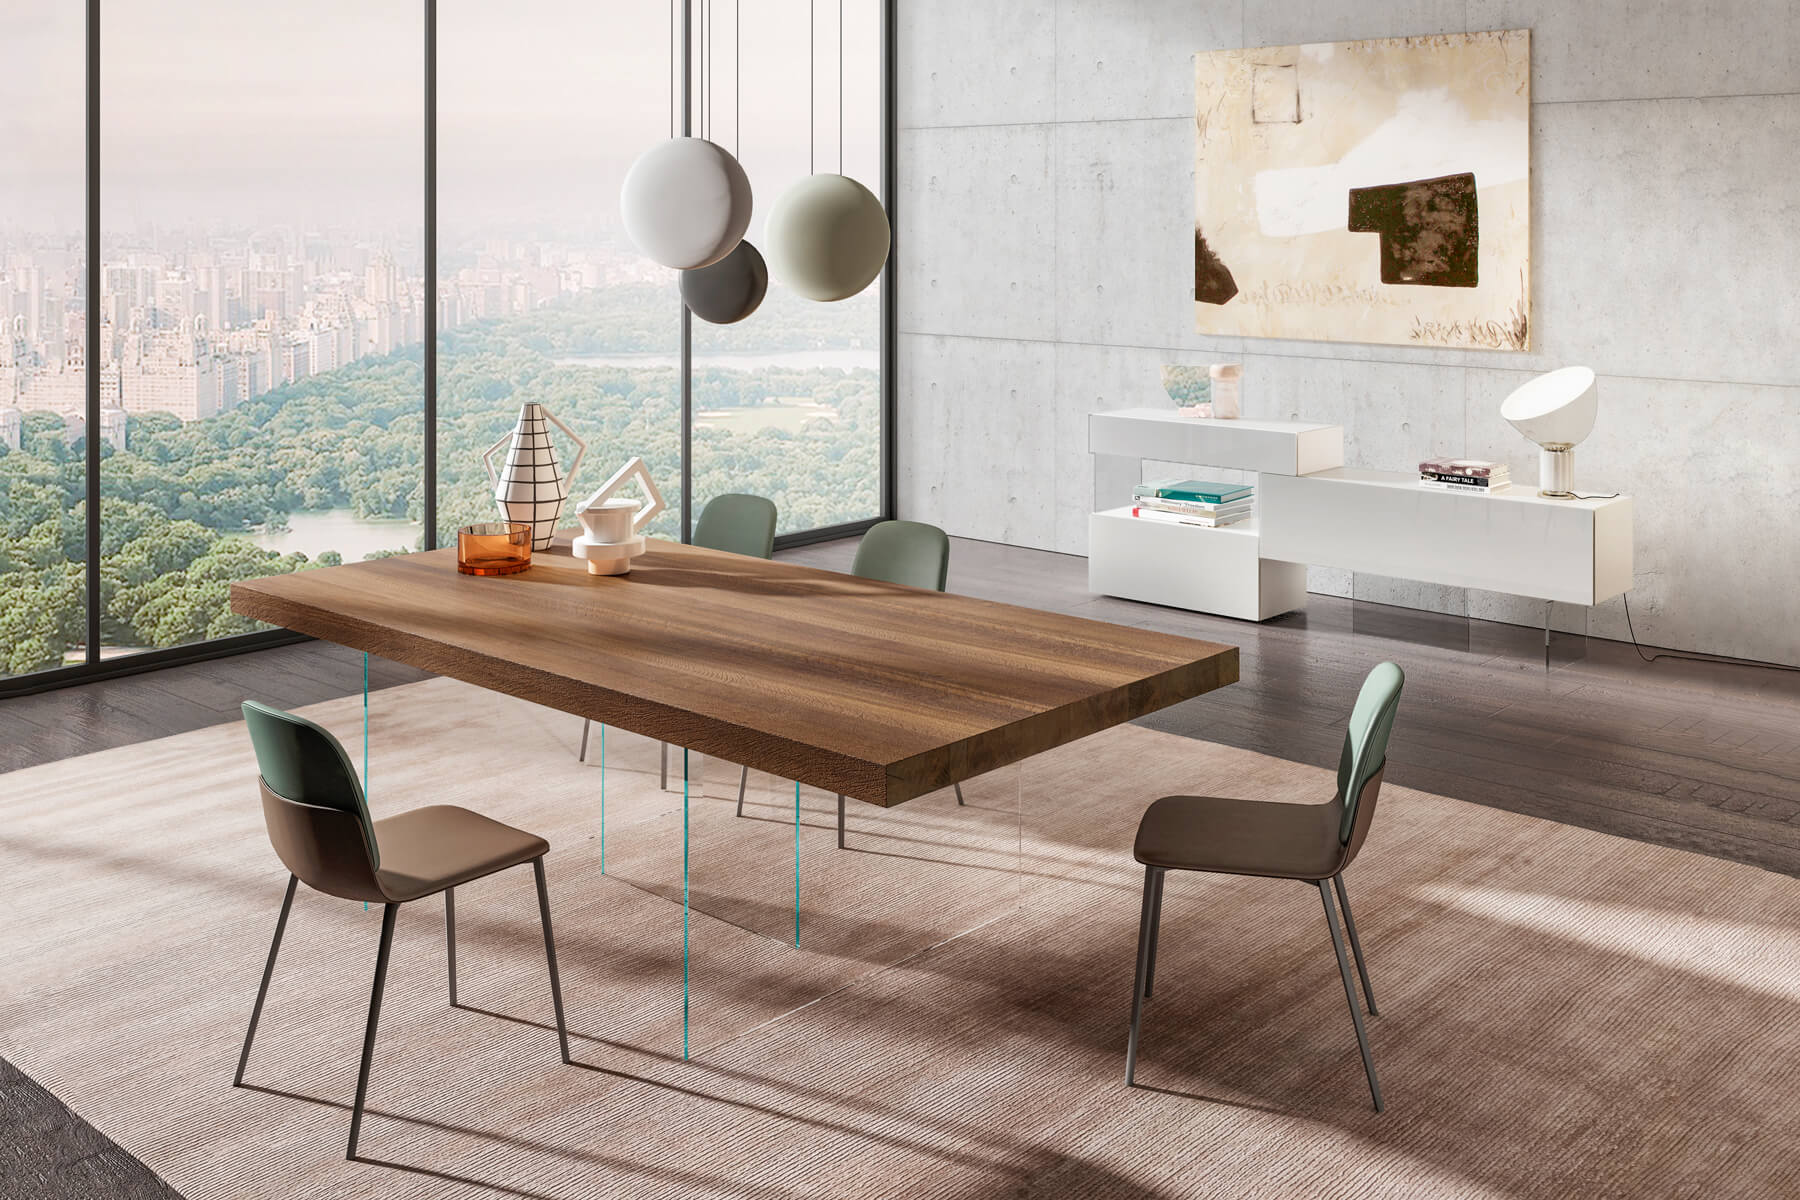 dining-lago-design